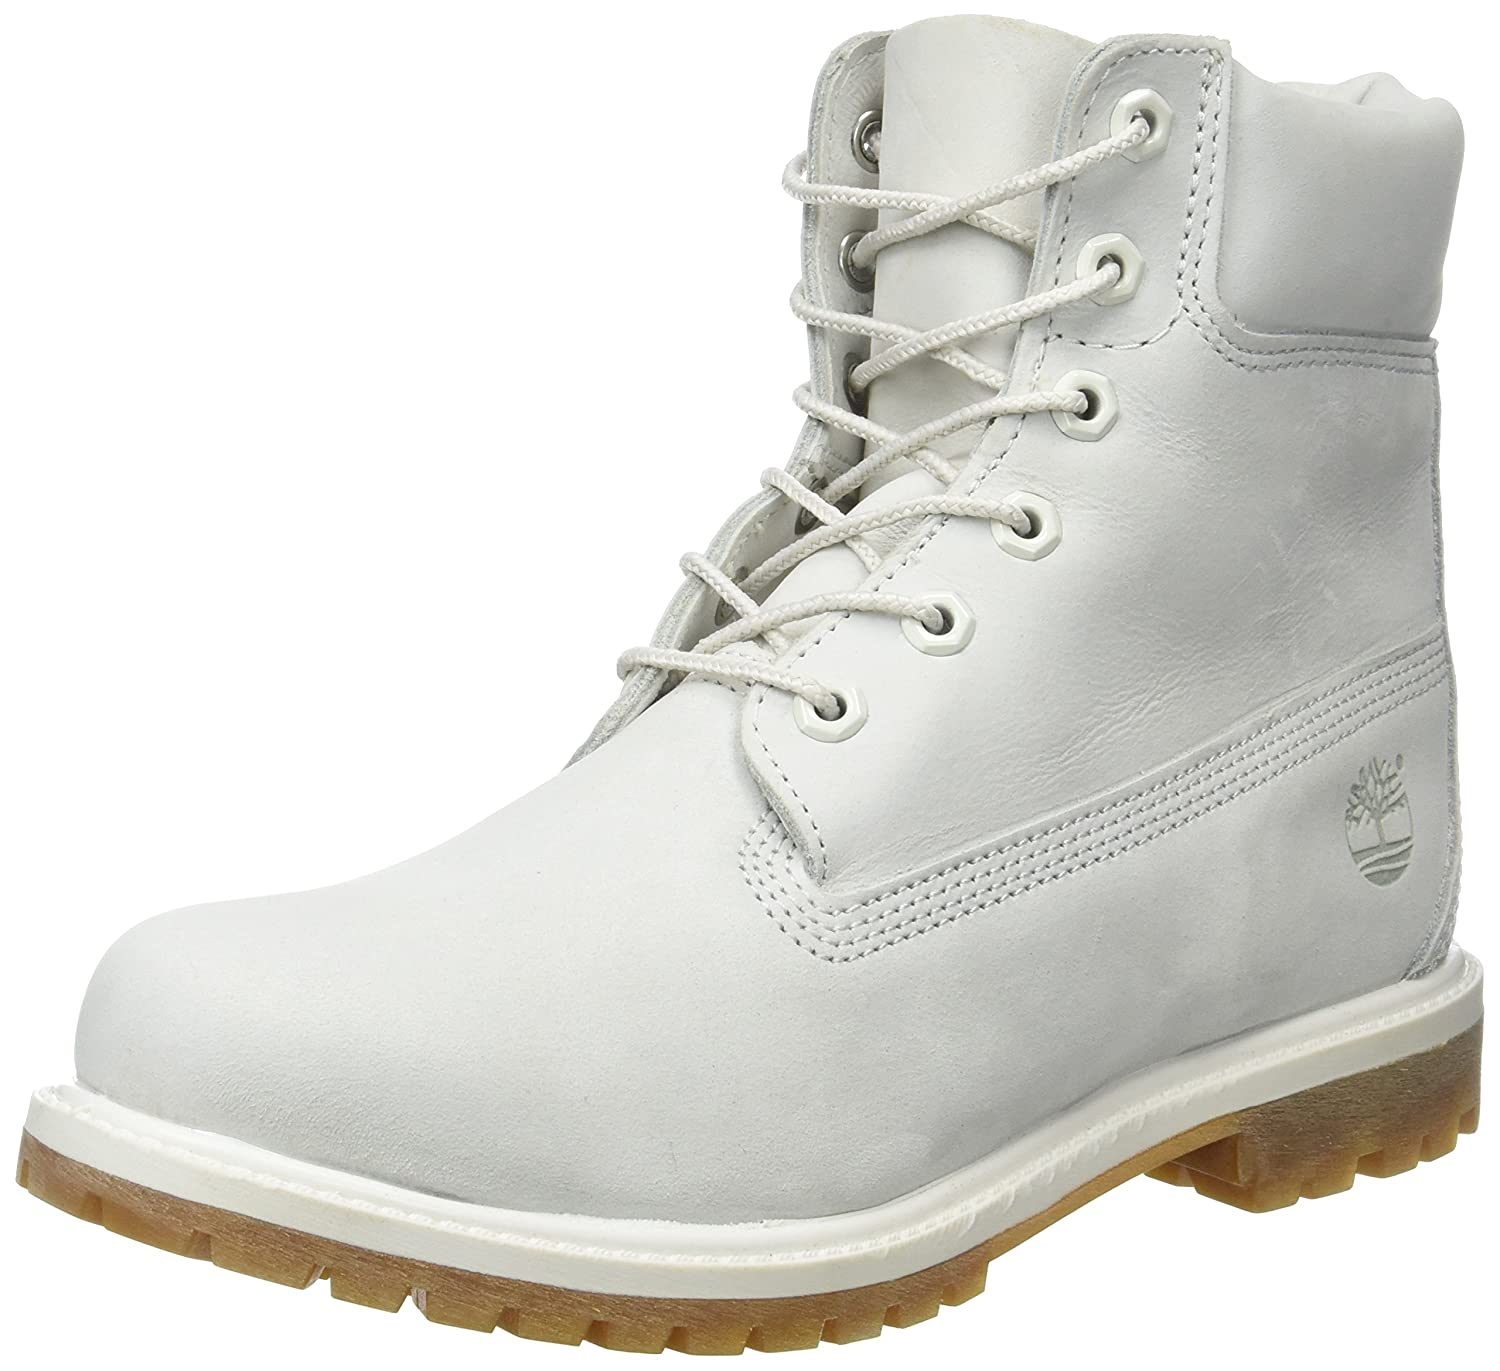 Timberland 6in Premium Boot - W Vaporous Gre, Woman, Size: 39 Eu (8 Us / 6 Uk)